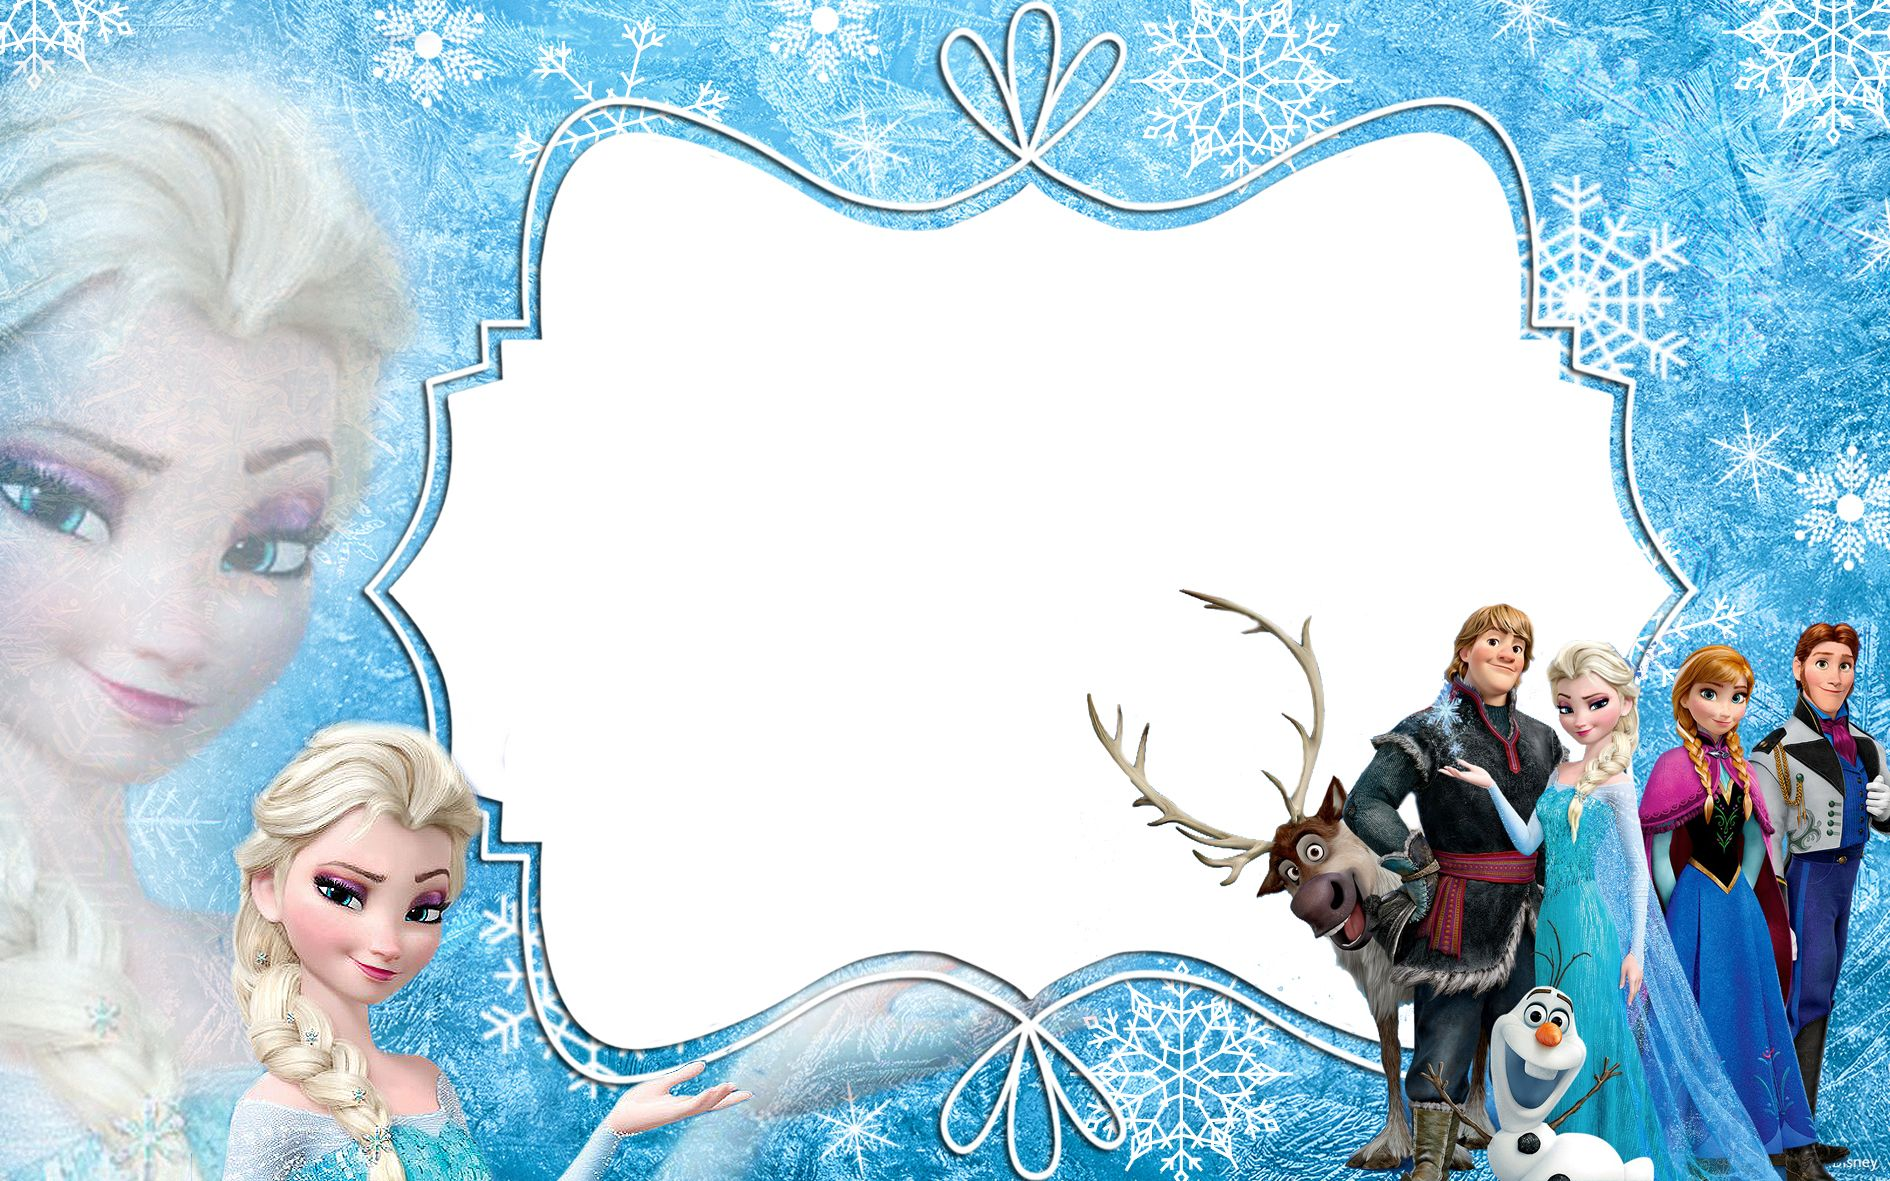 23 Frozen 2013 Movie Wallpaper s Collections